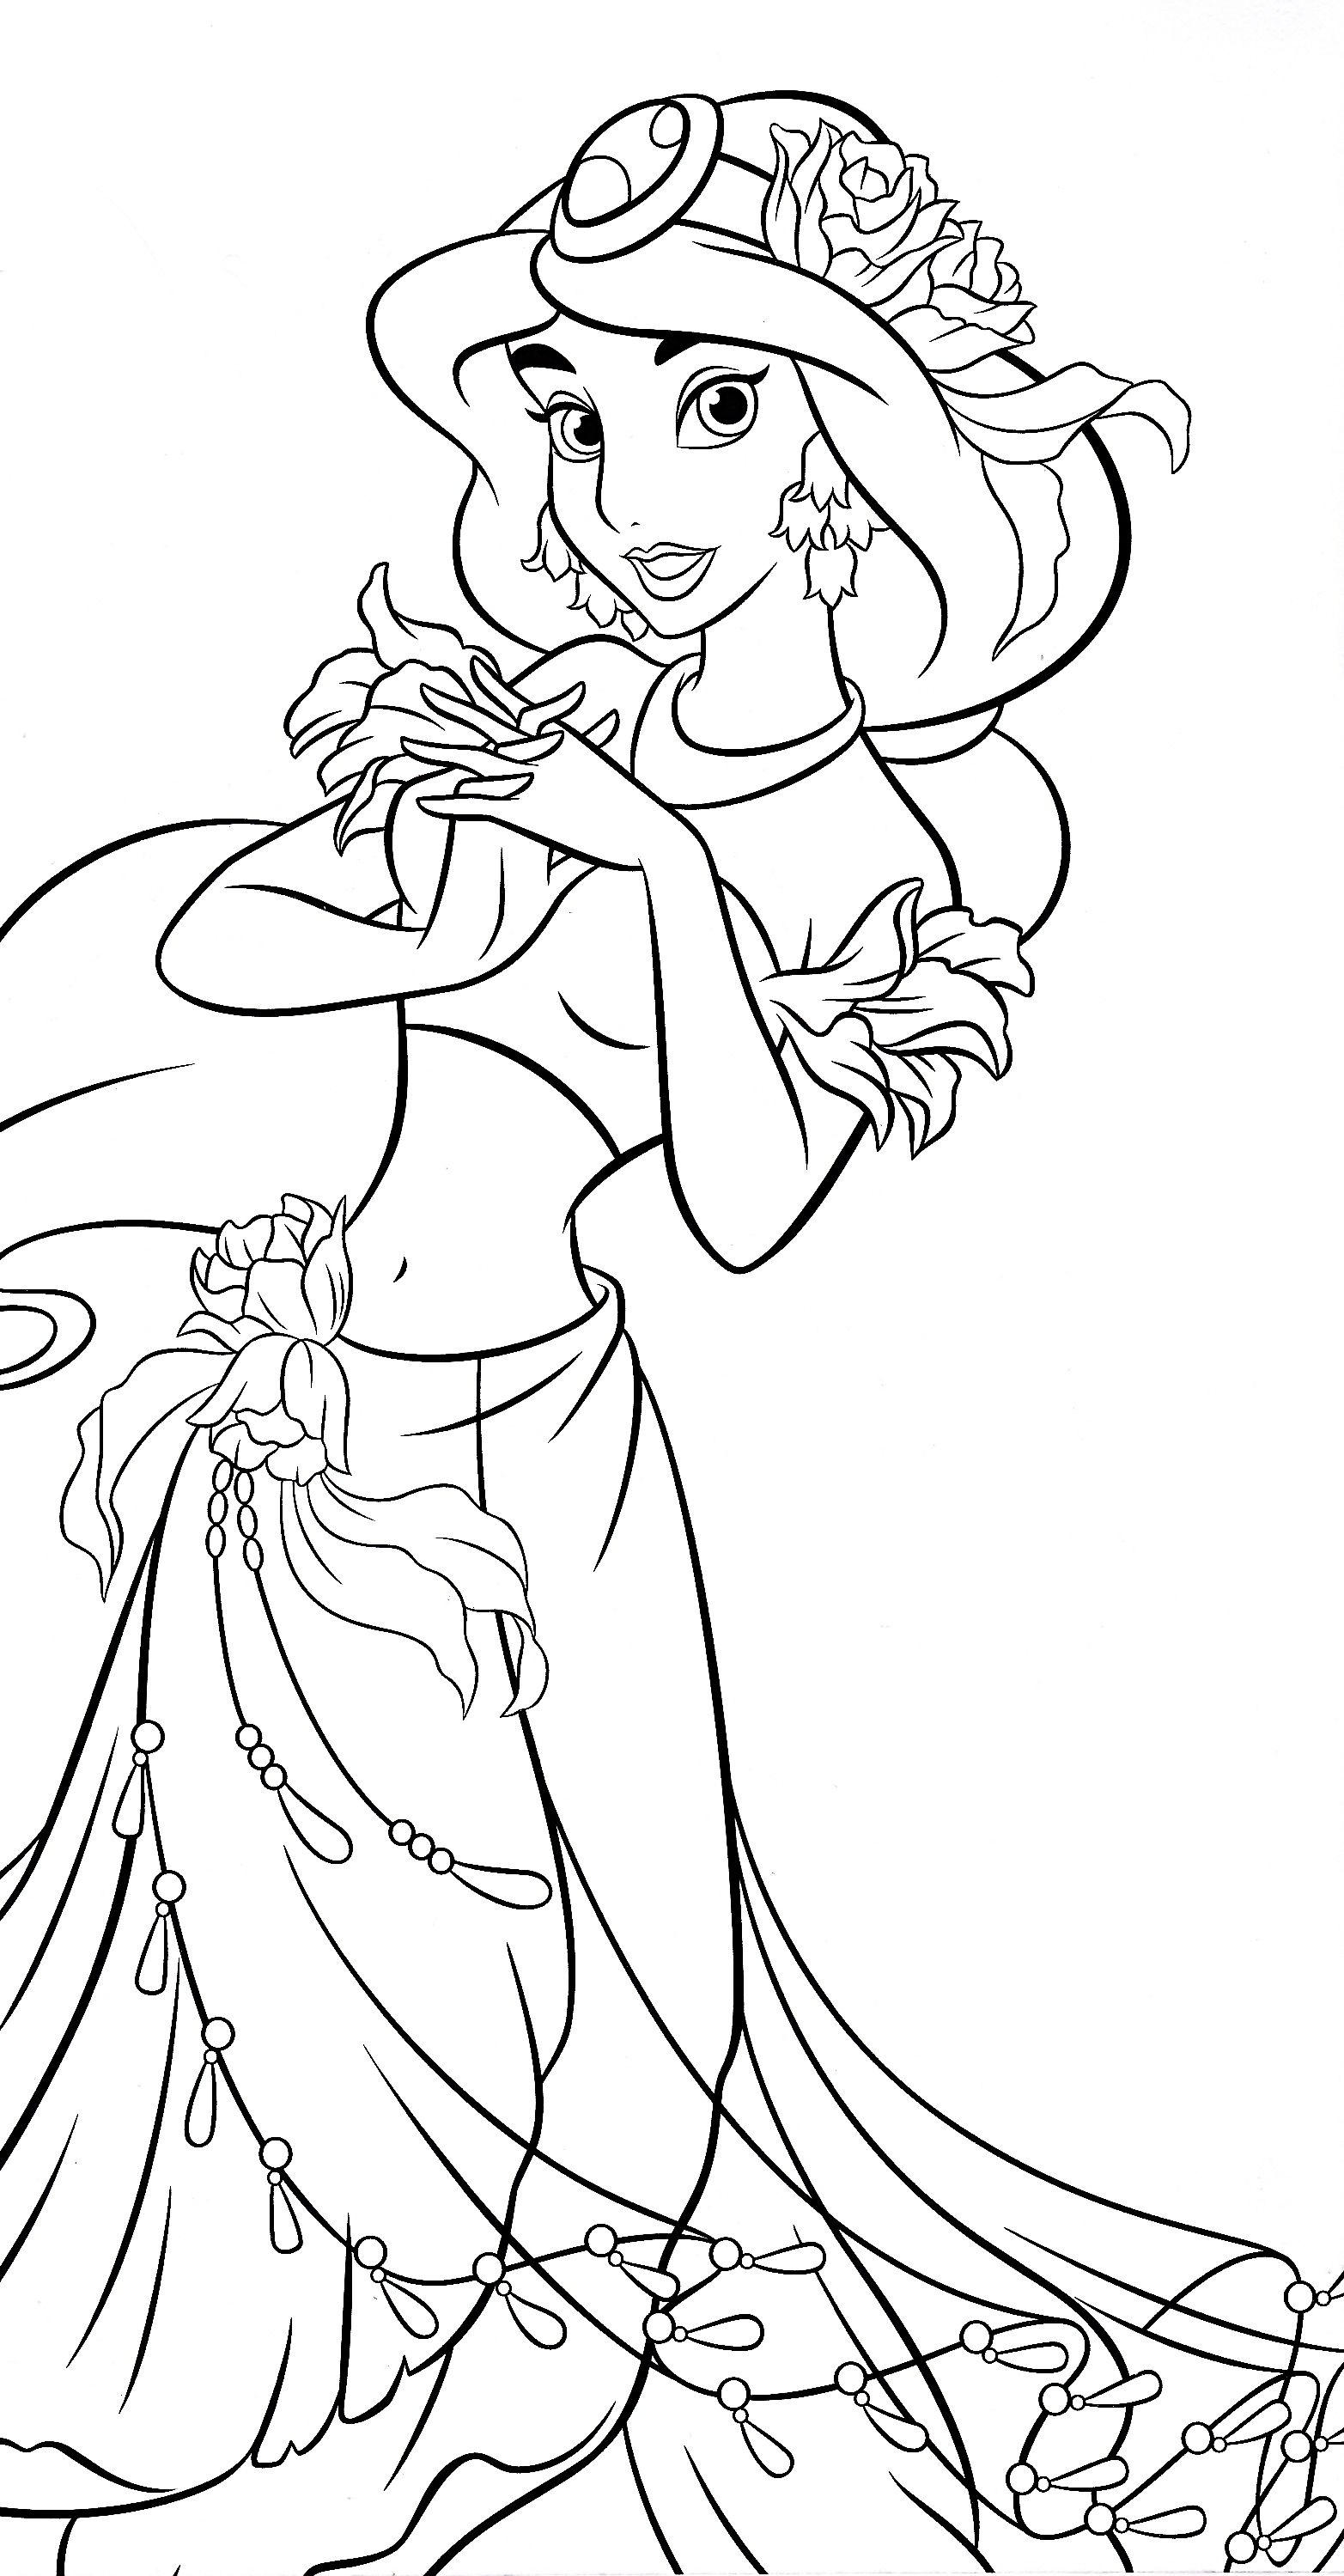 Anime Coloring Pages For Adults Google Search Disney Princess Coloring Pages Mermaid Coloring Pages Disney Coloring Pages